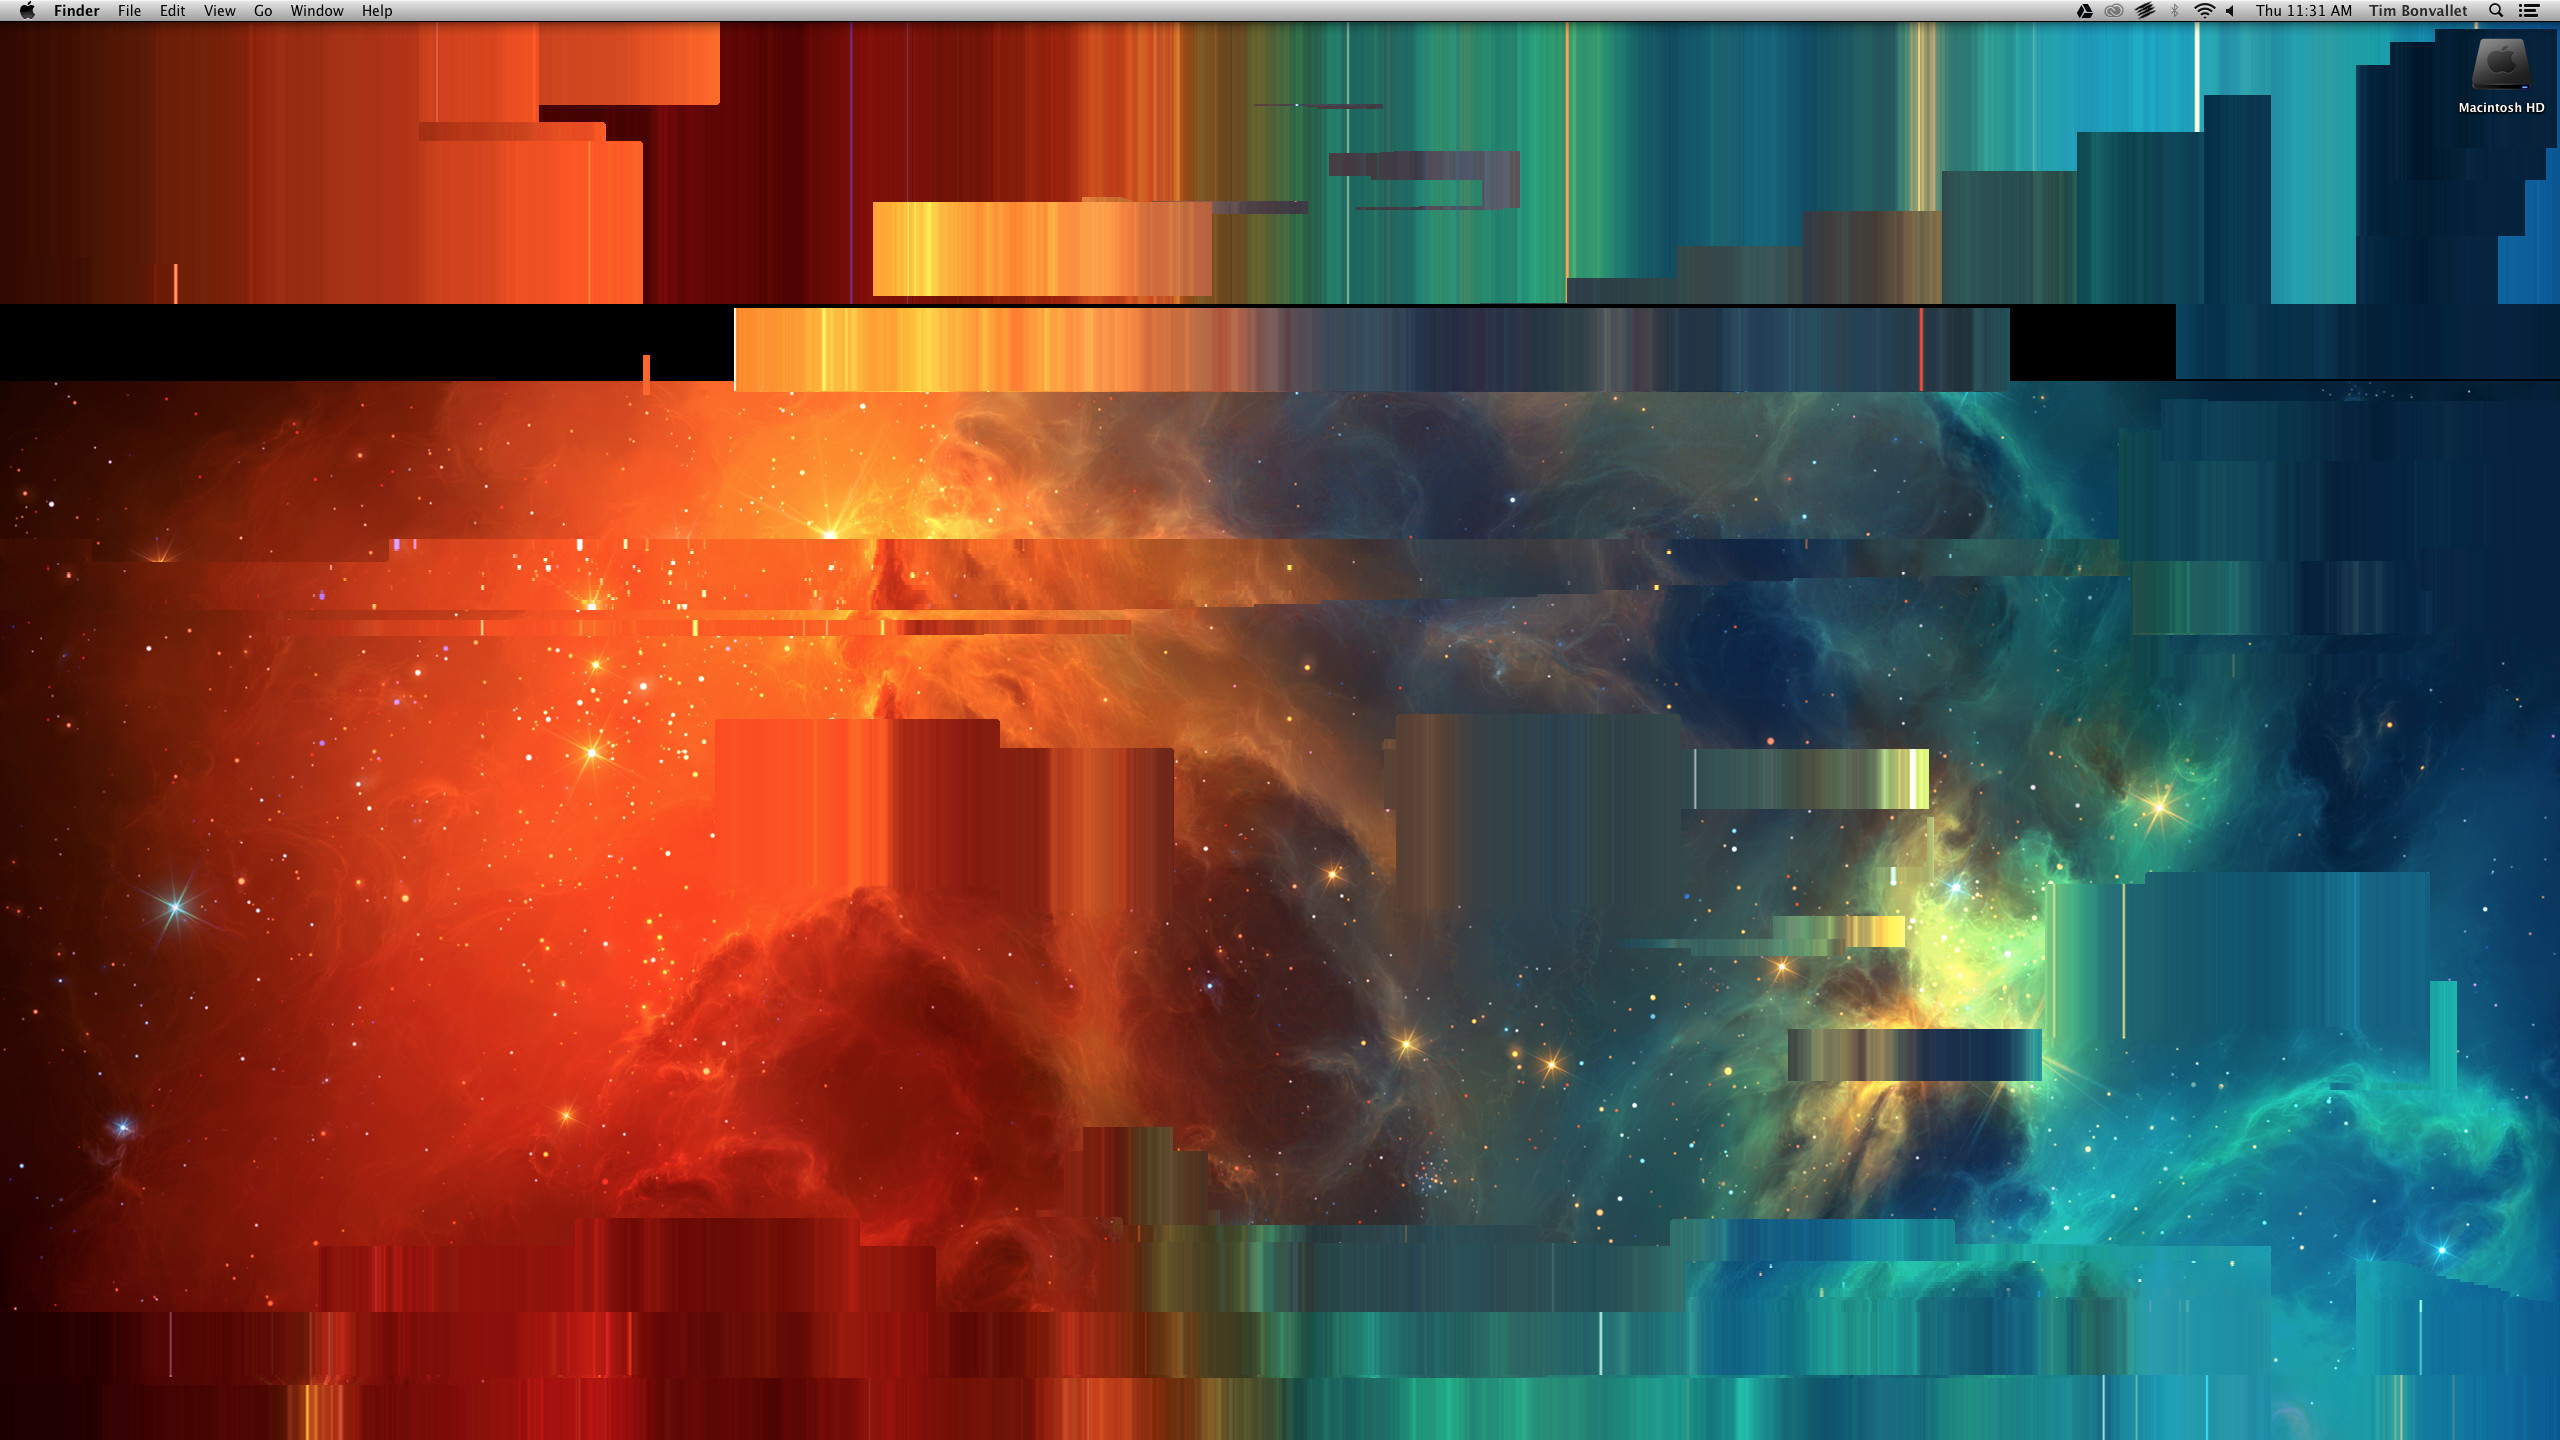 2560x1440 Glitch found in OSX. In Desktop Background options, tile a small image,  then switch to an image larger than the display's resolution.